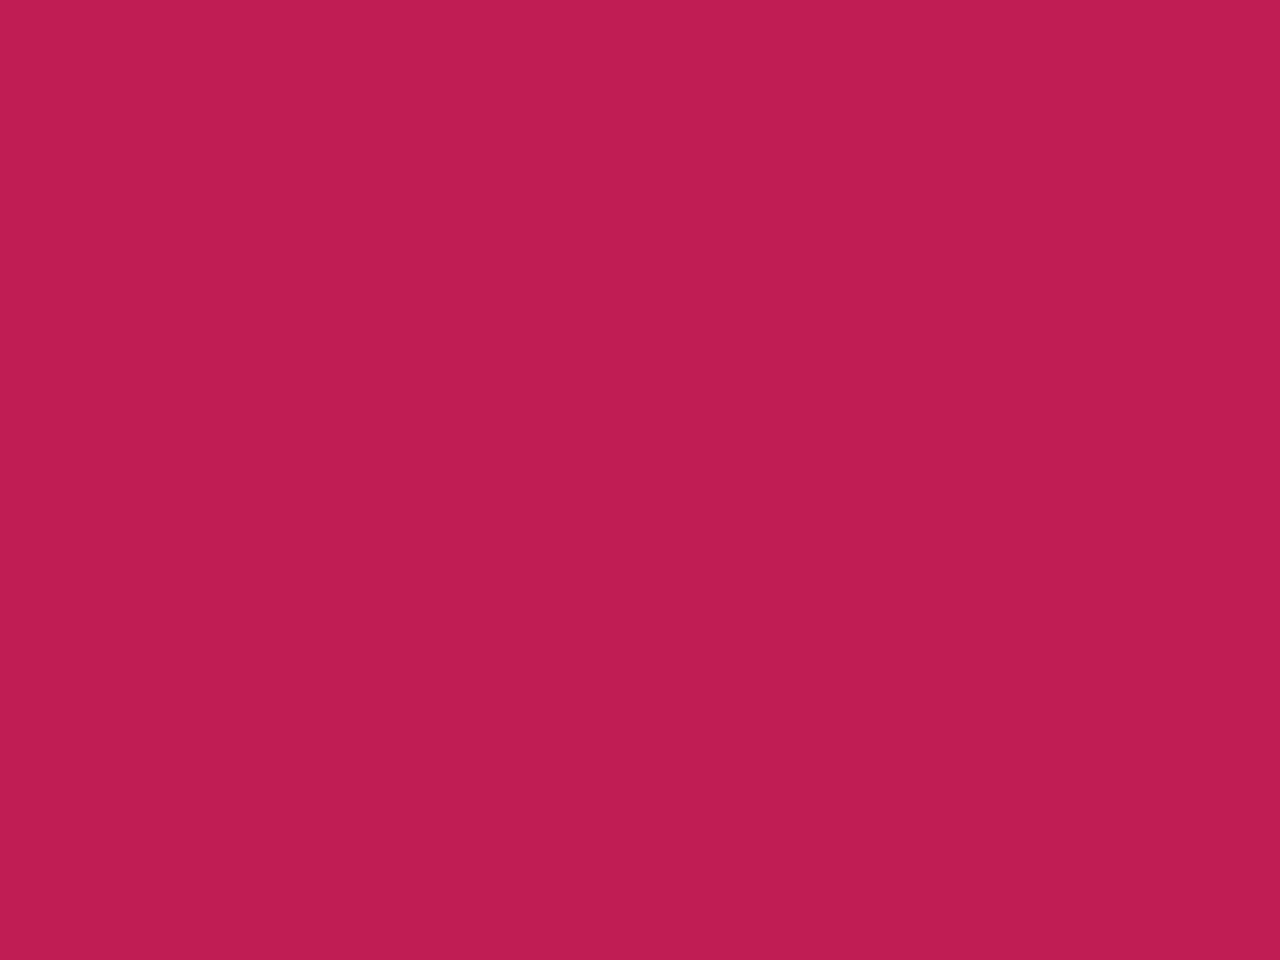 1280x960 Rose Red Solid Color Background